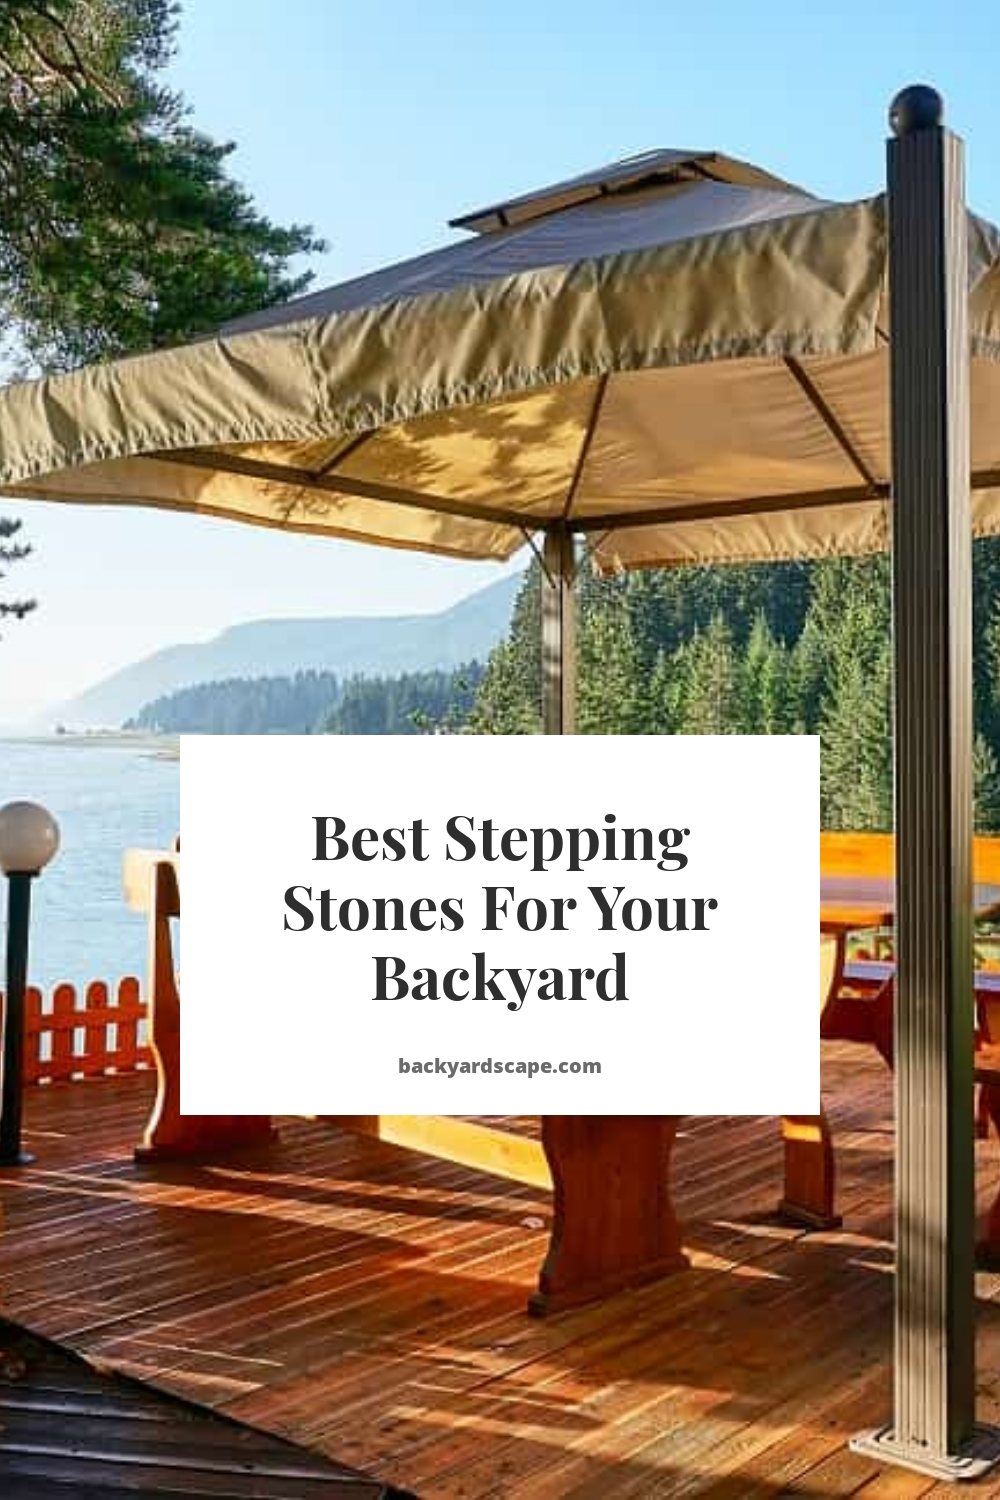 Best Stepping Stones For Your Backyard